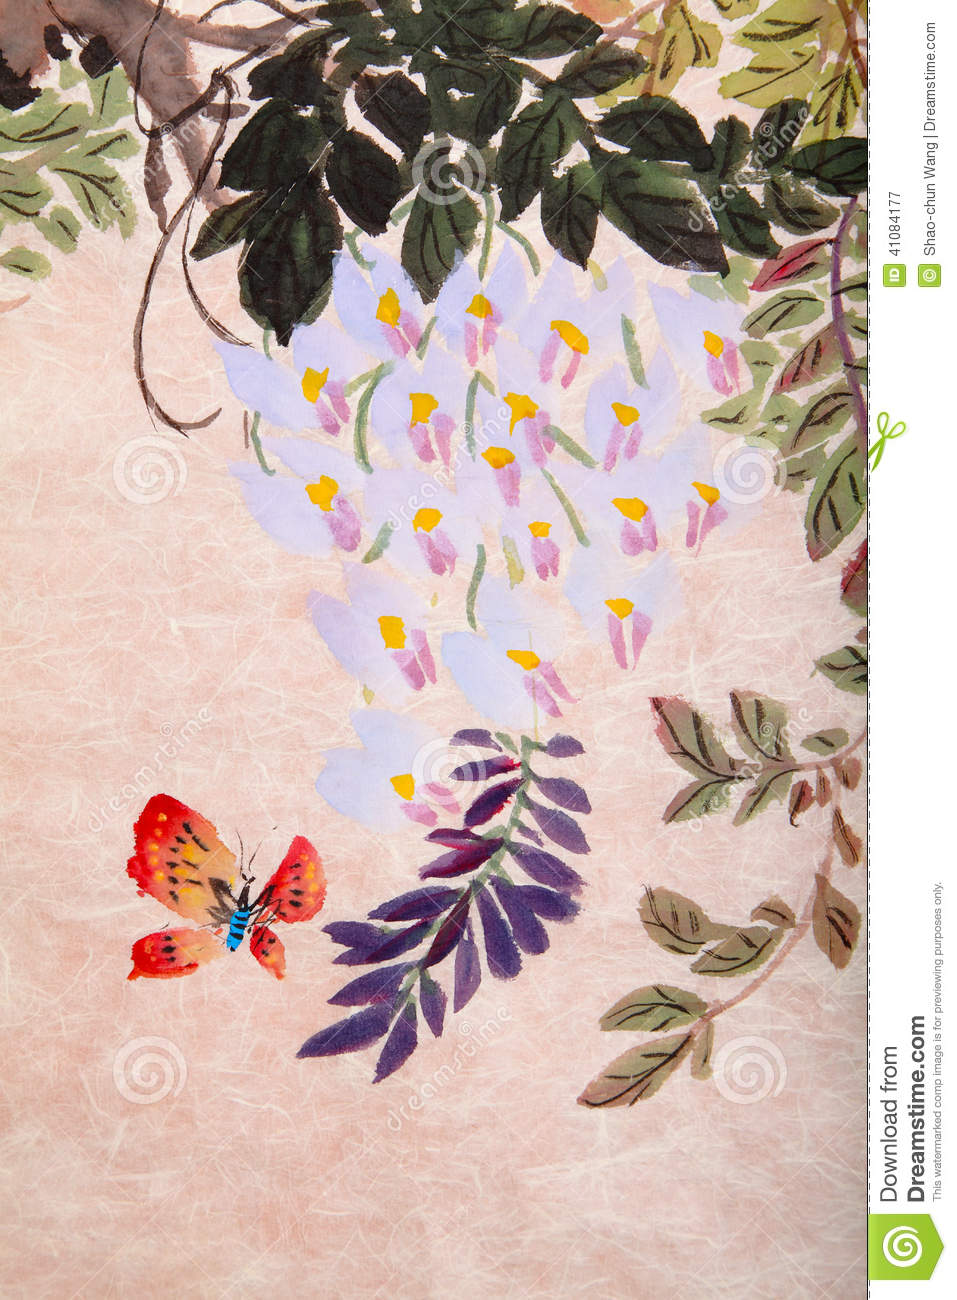 Chinese Painting Of Flowers And Butterfly Stock